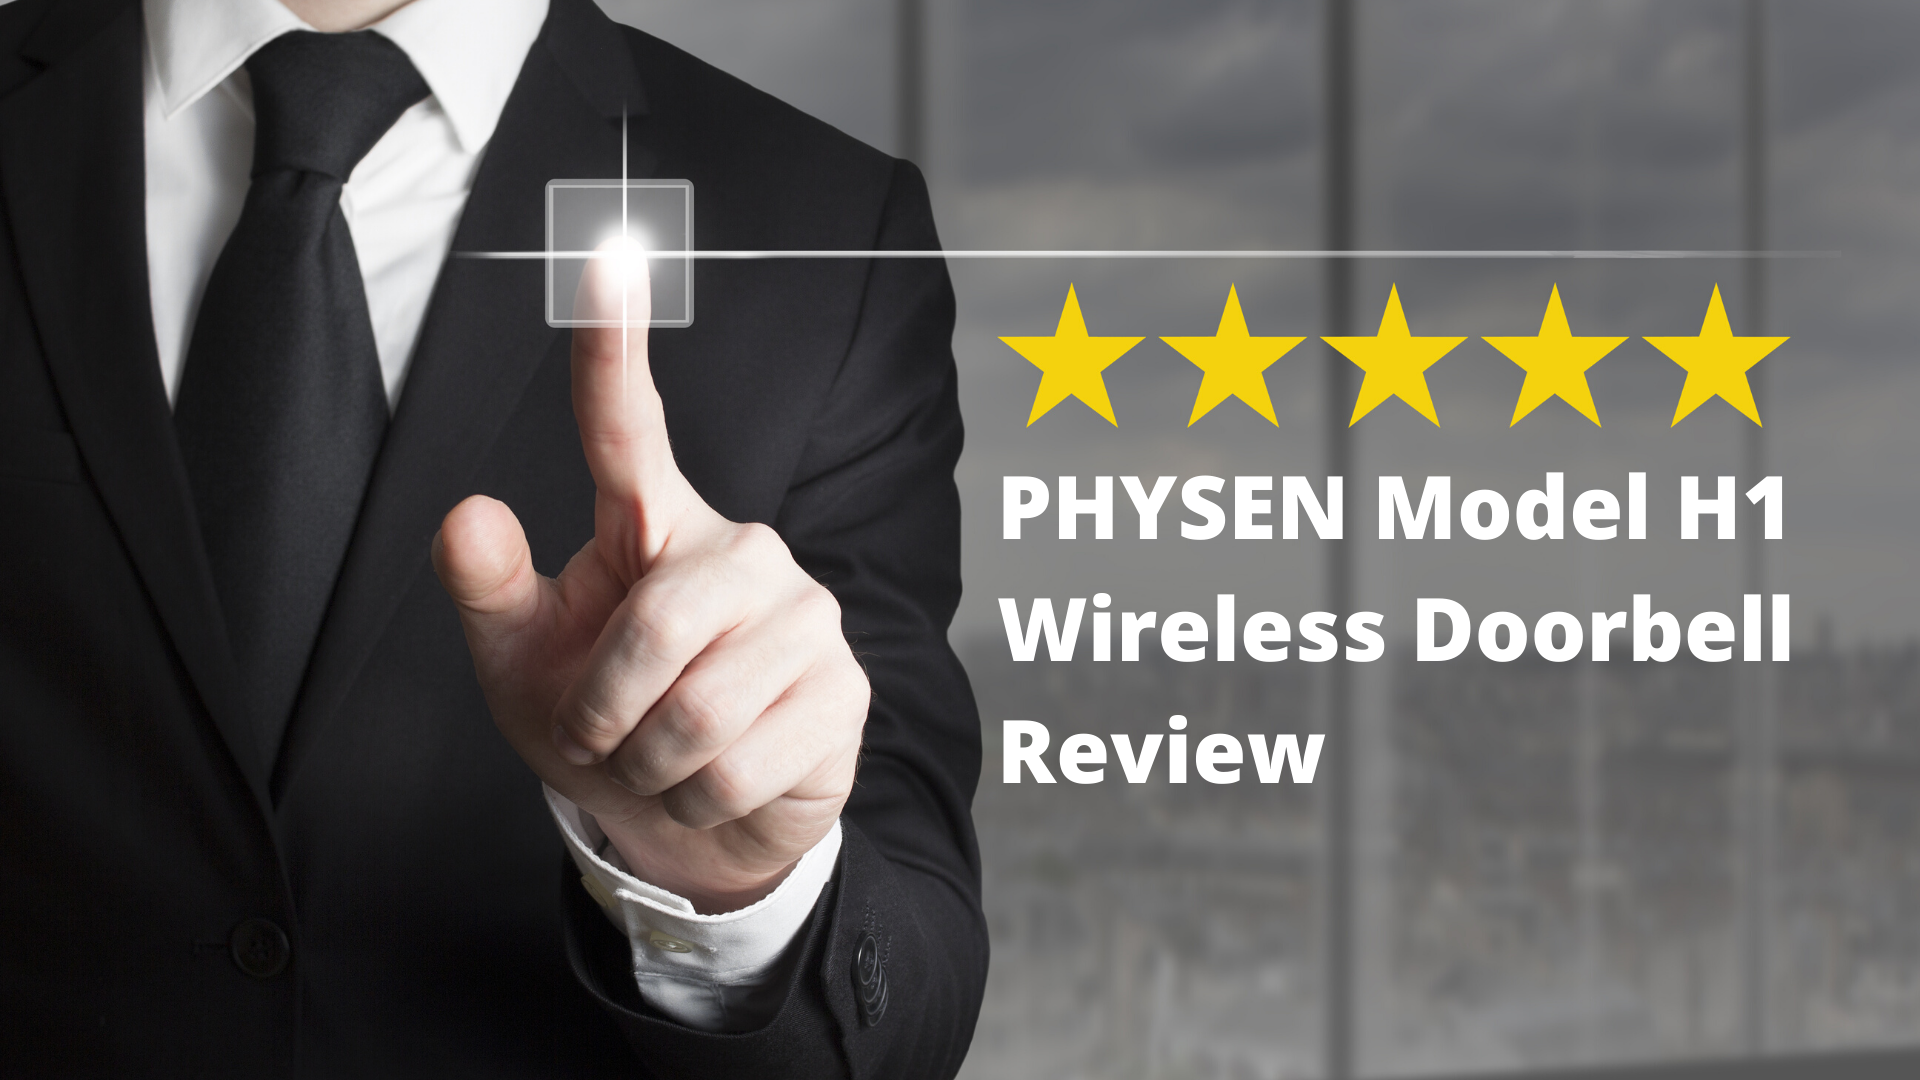 PHYSEN Model H1 Wireless Doorbell Review